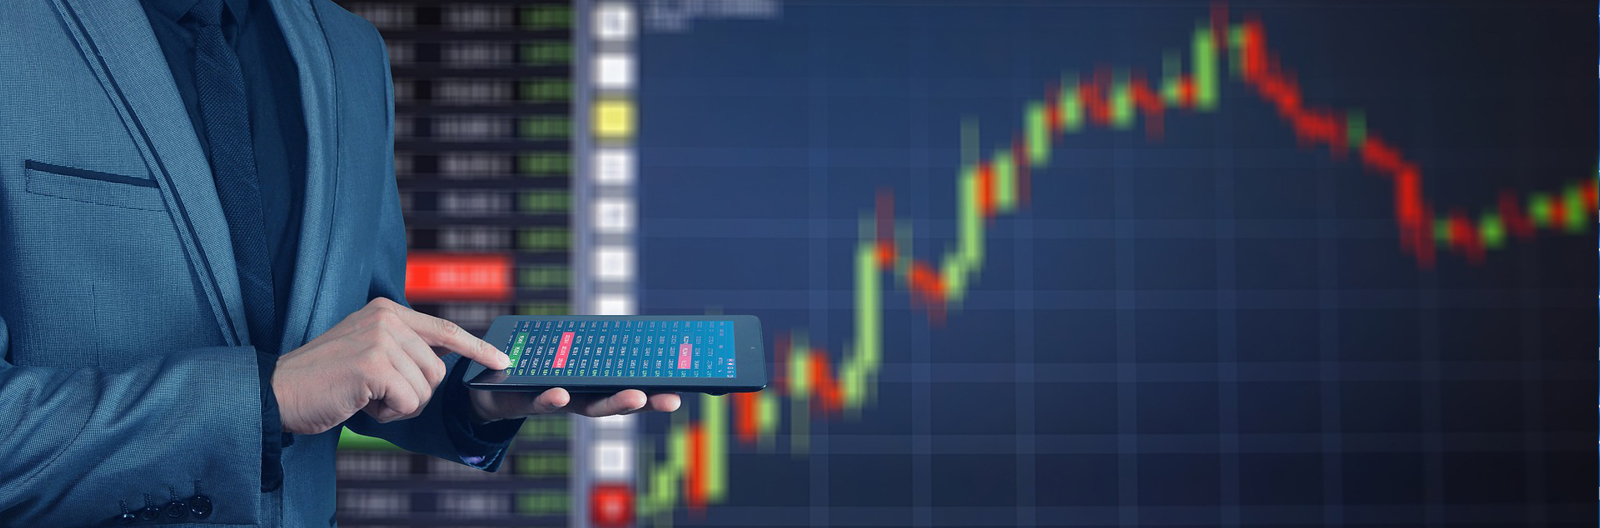 Want to use the facilities offered in the trading platform?